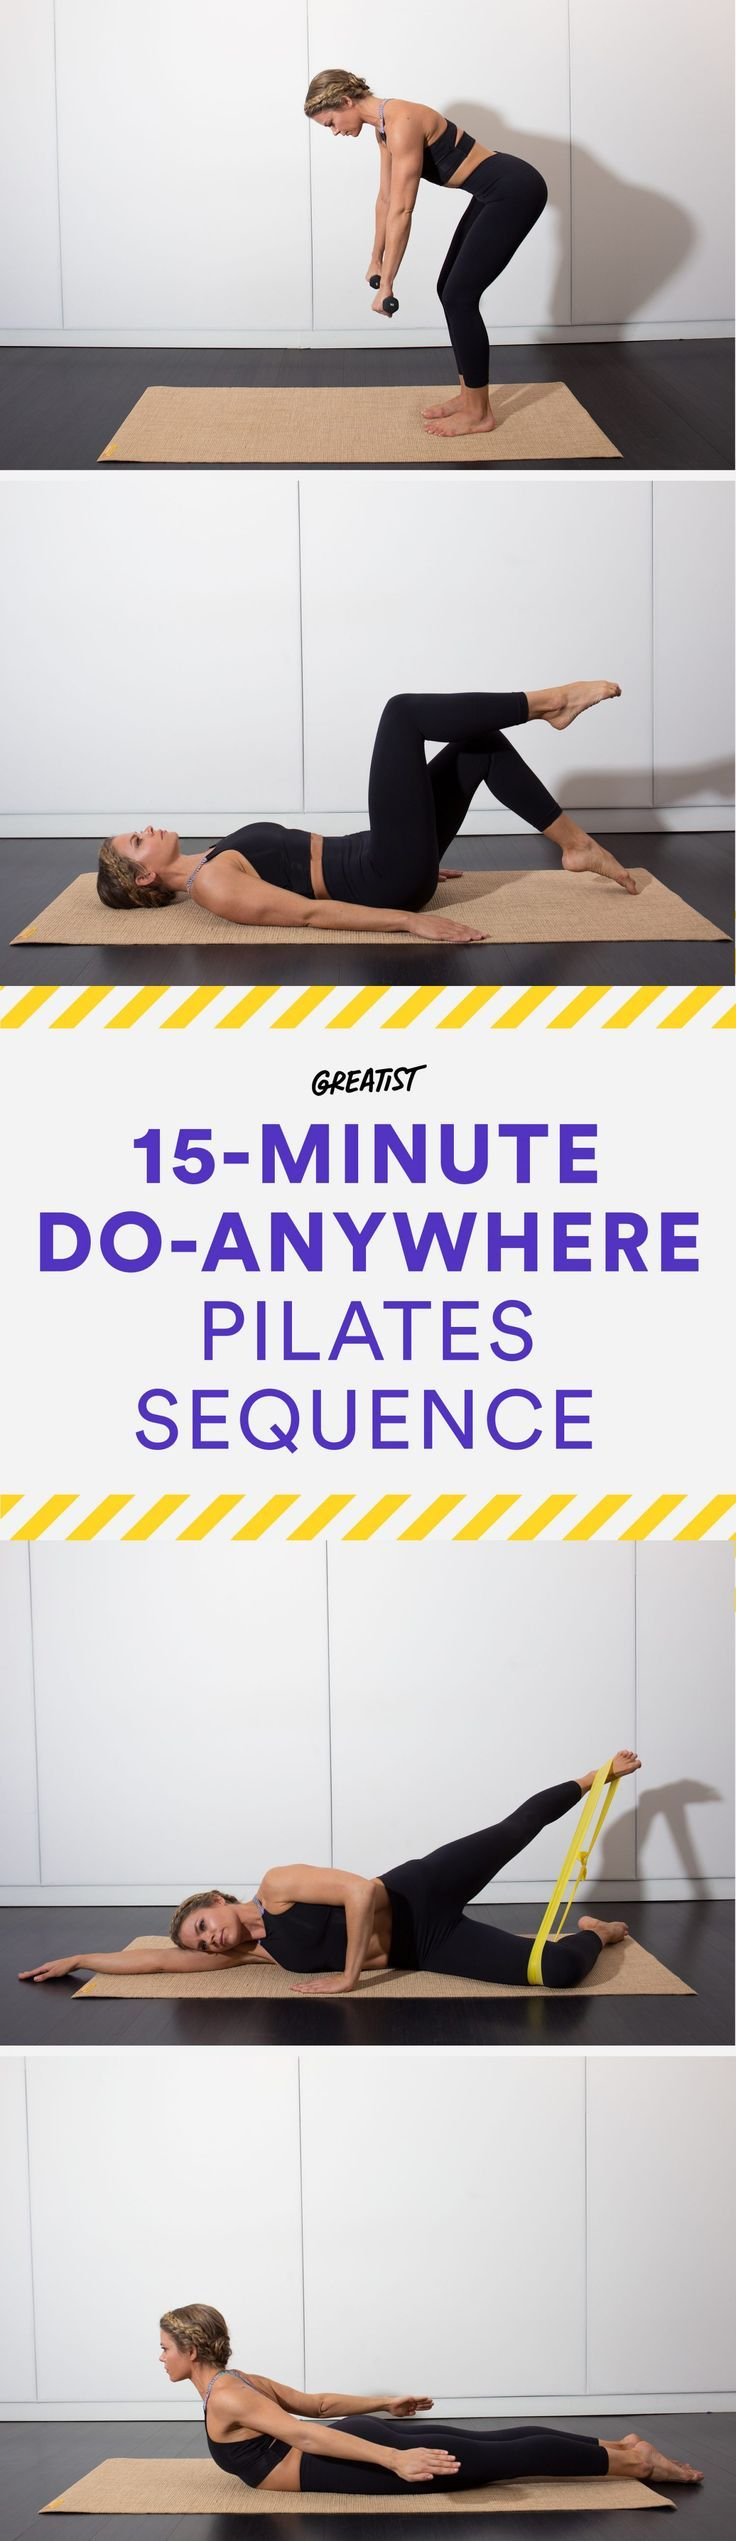 The Best Pilates Moves You Can Do Without a Reformer | Fitness ...